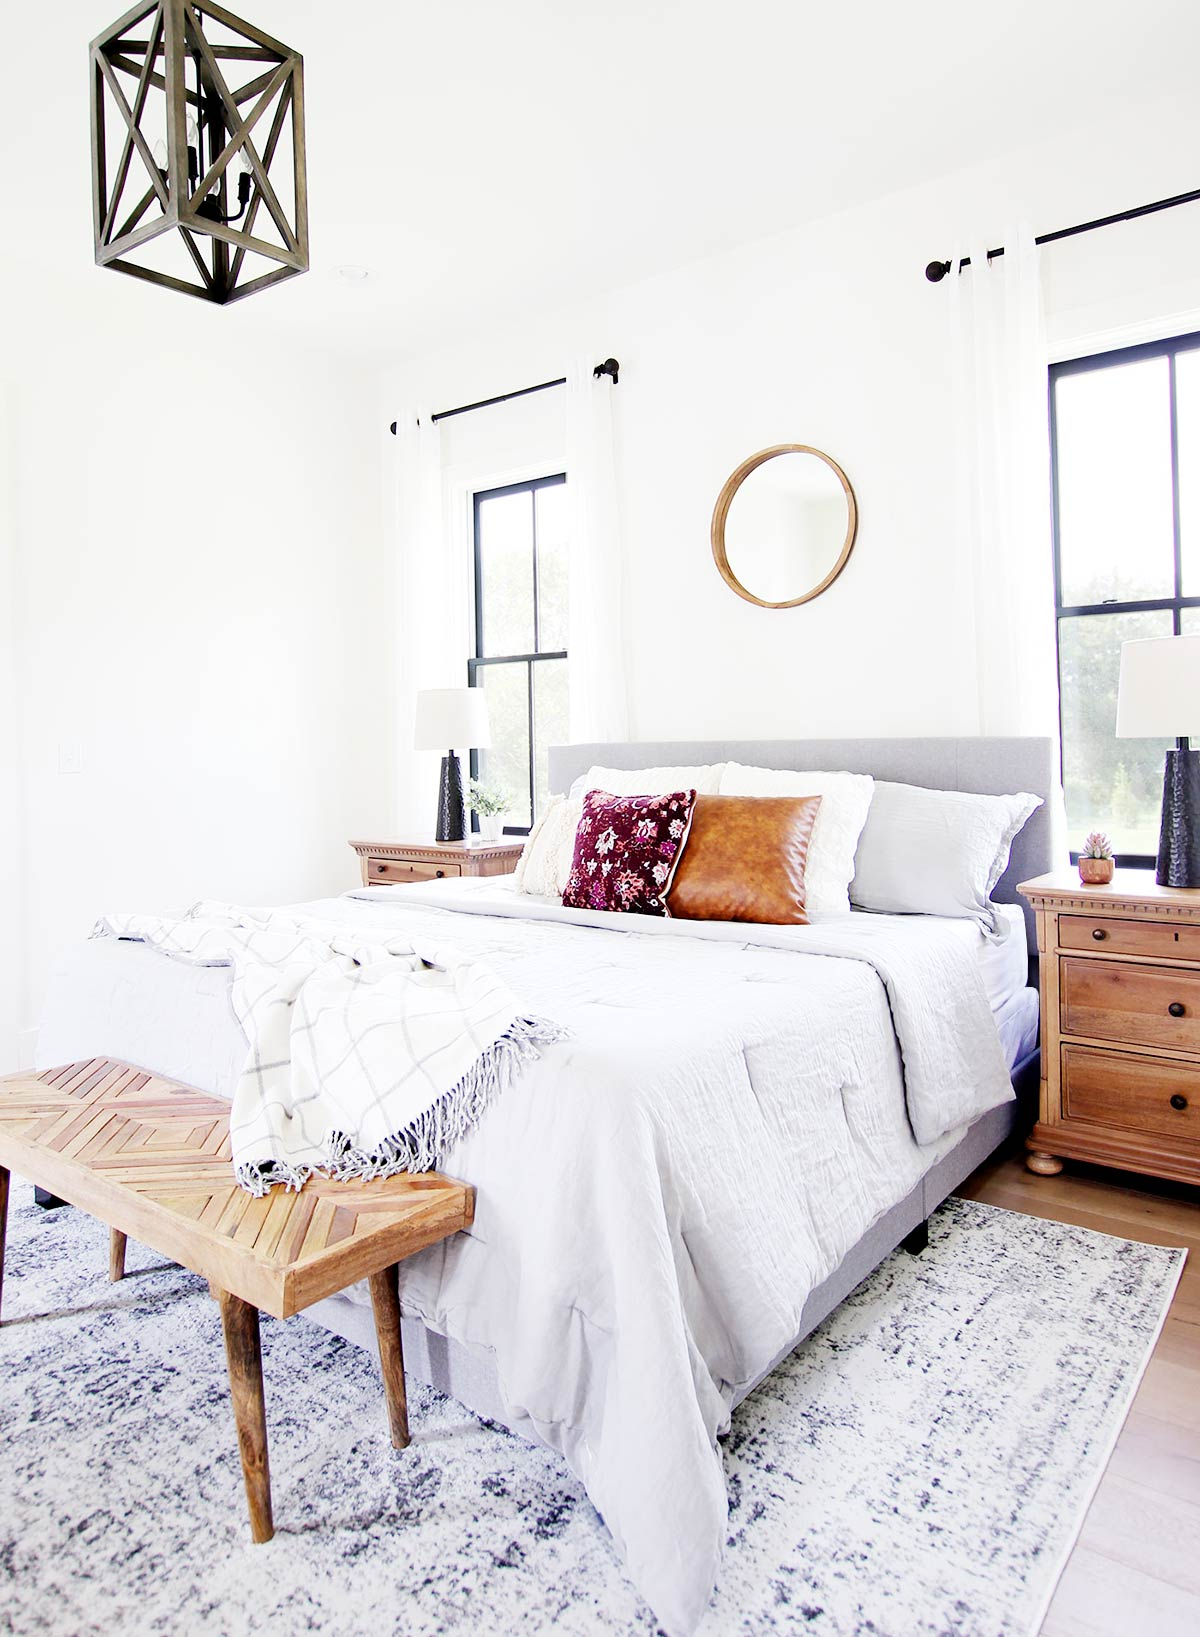 Creating a Light and Airy Bedroom - Plank and Pillow